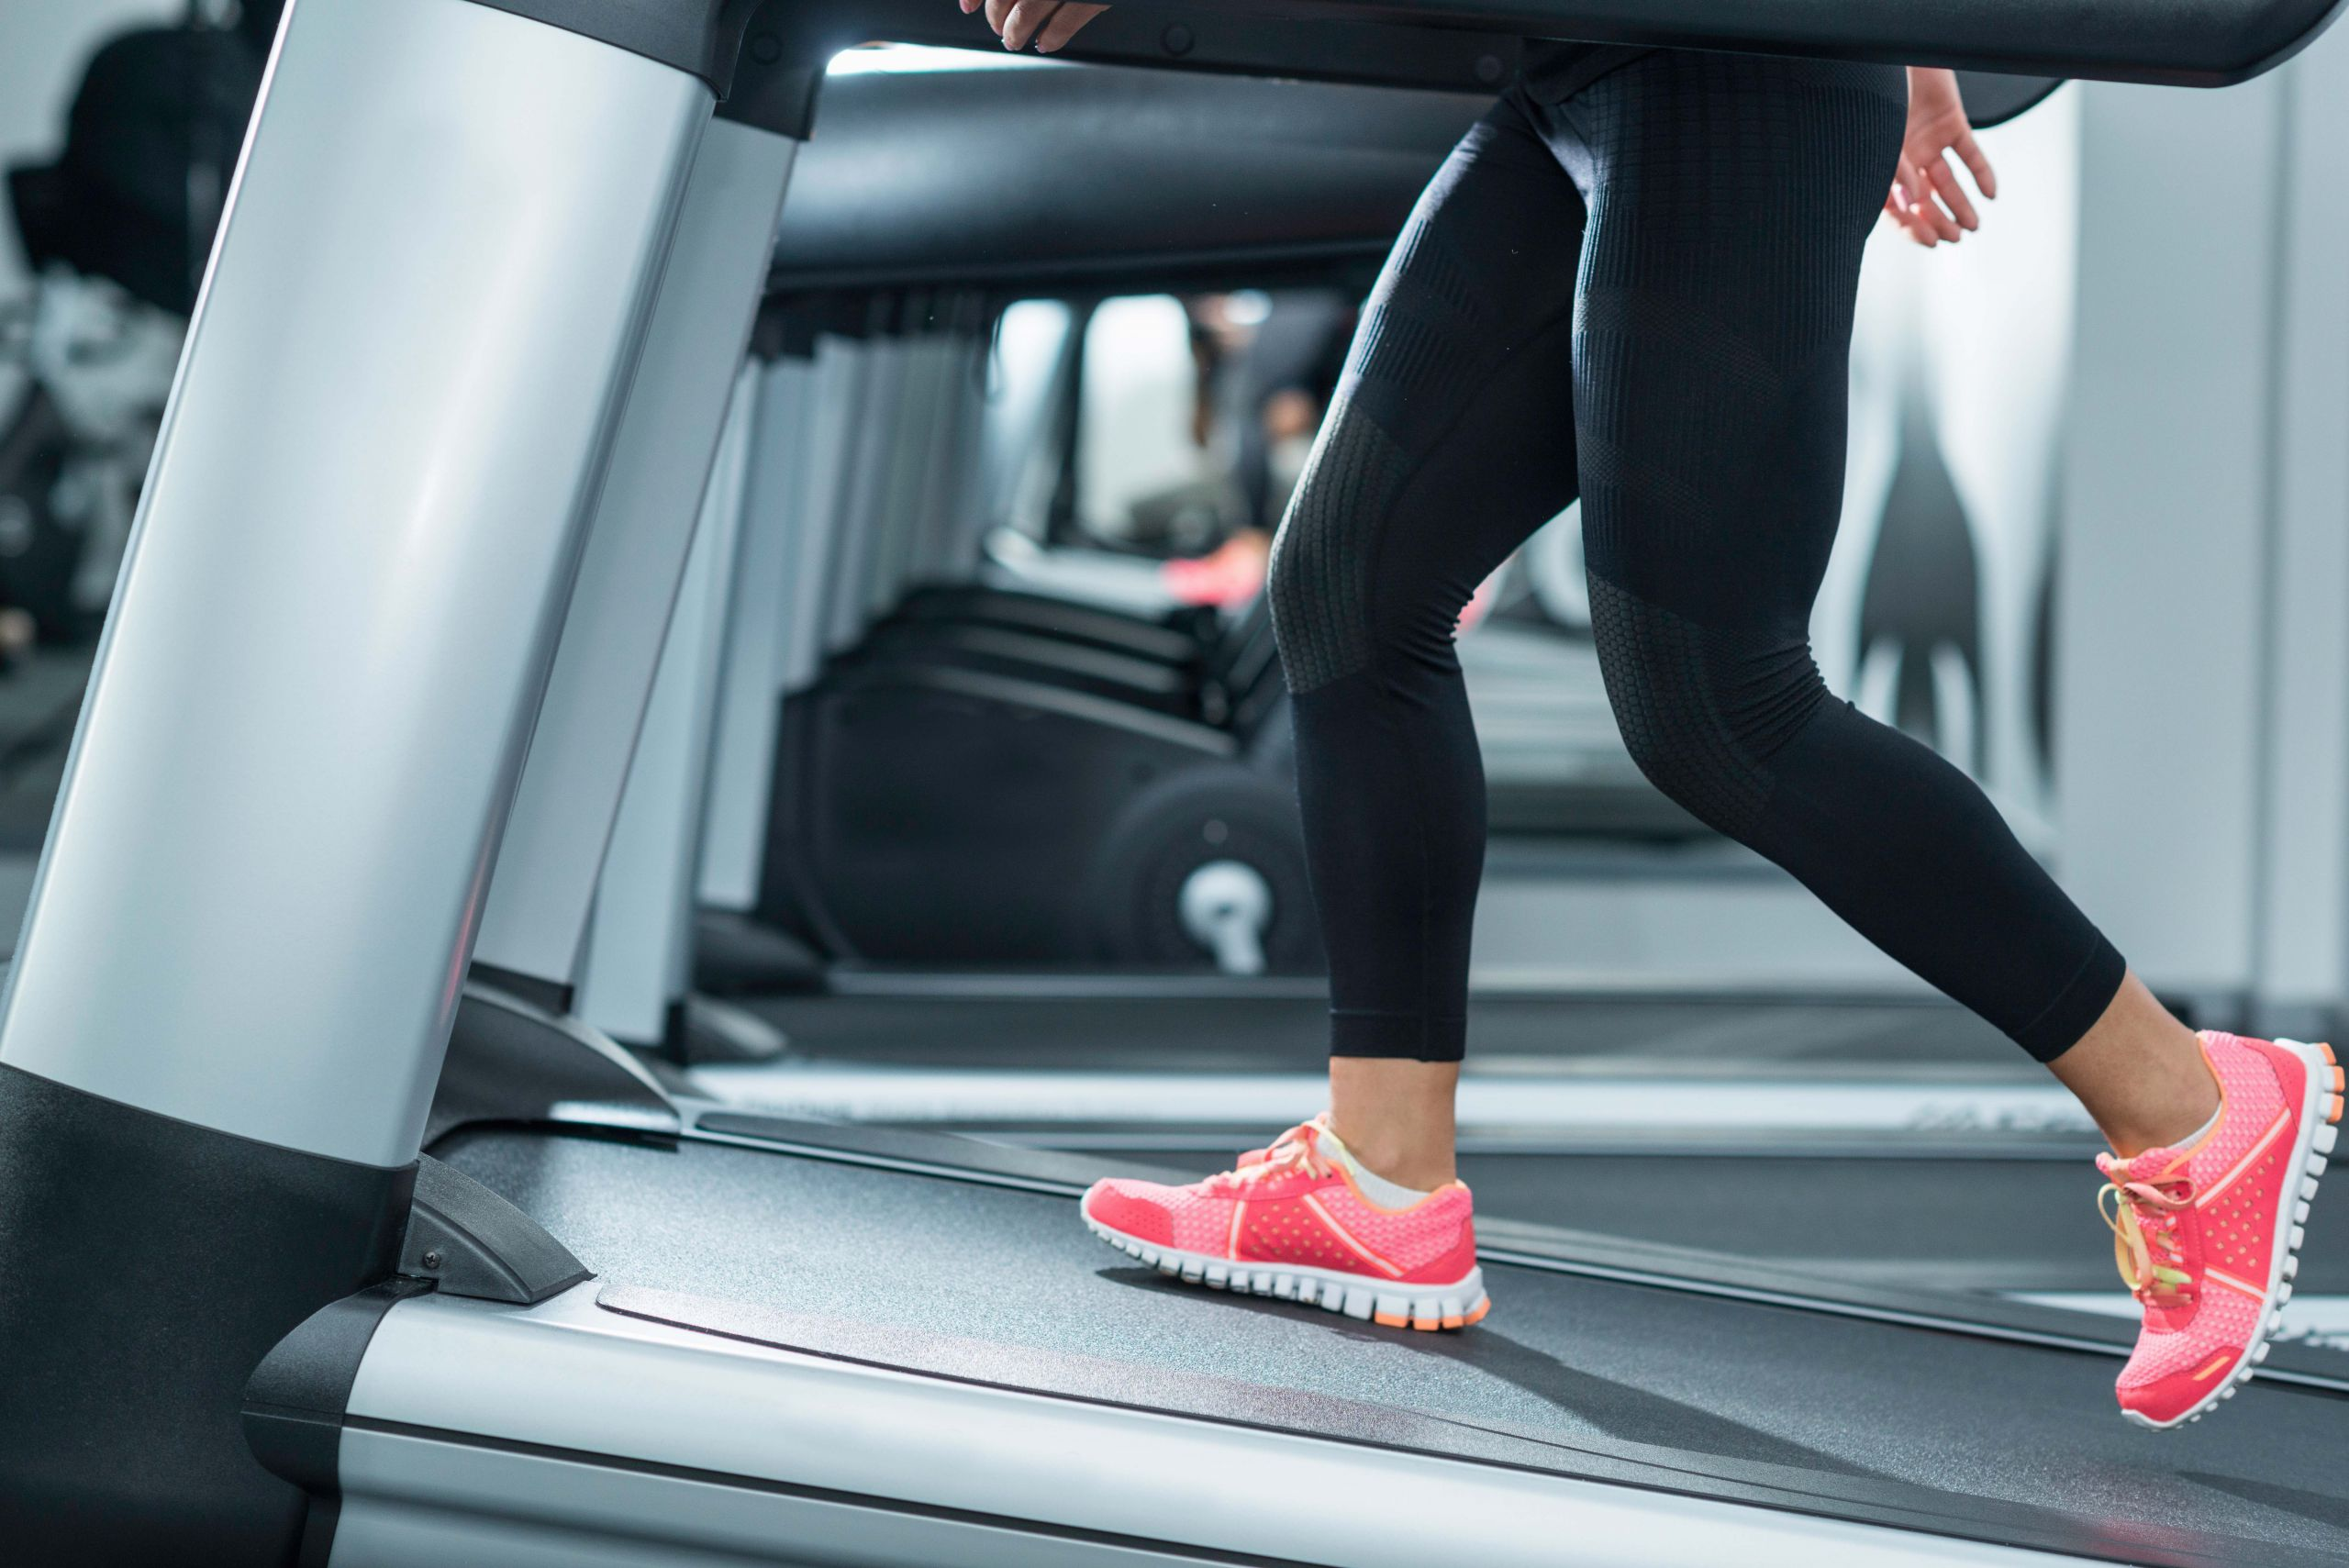 Increase the incline on the treadmill to burn more calories quickly.